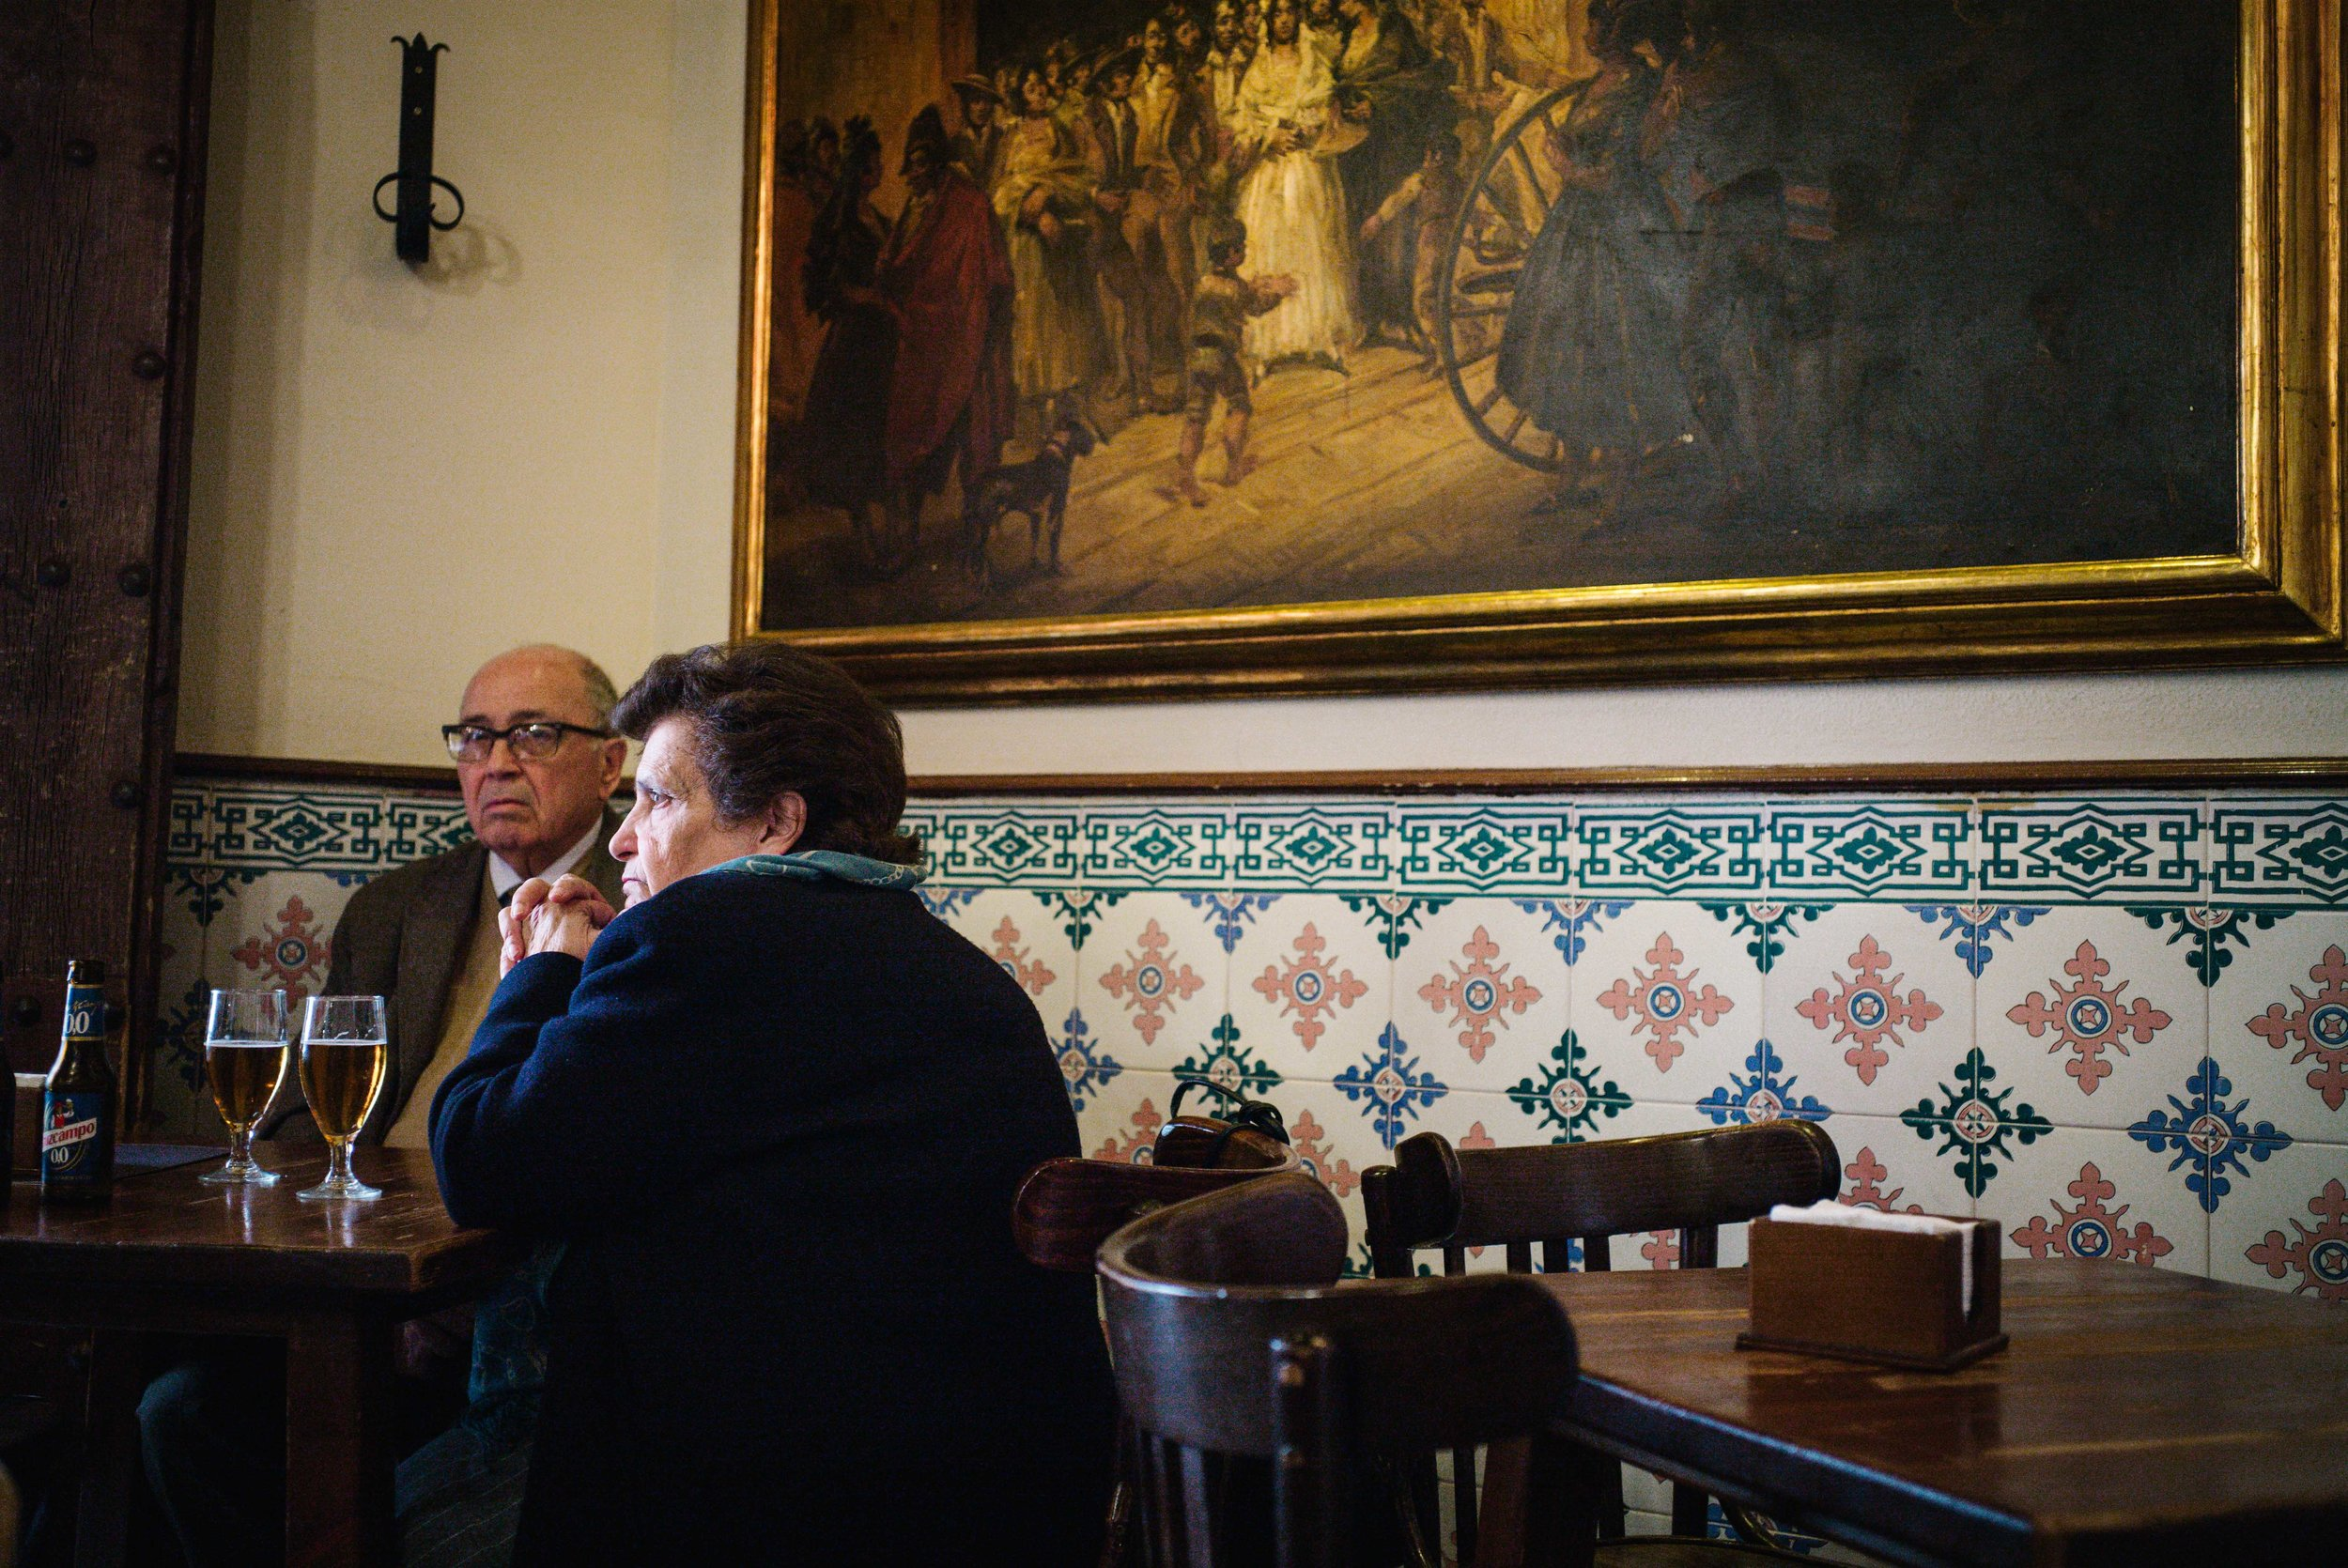 Lunch, Seville. Spain. 2017.